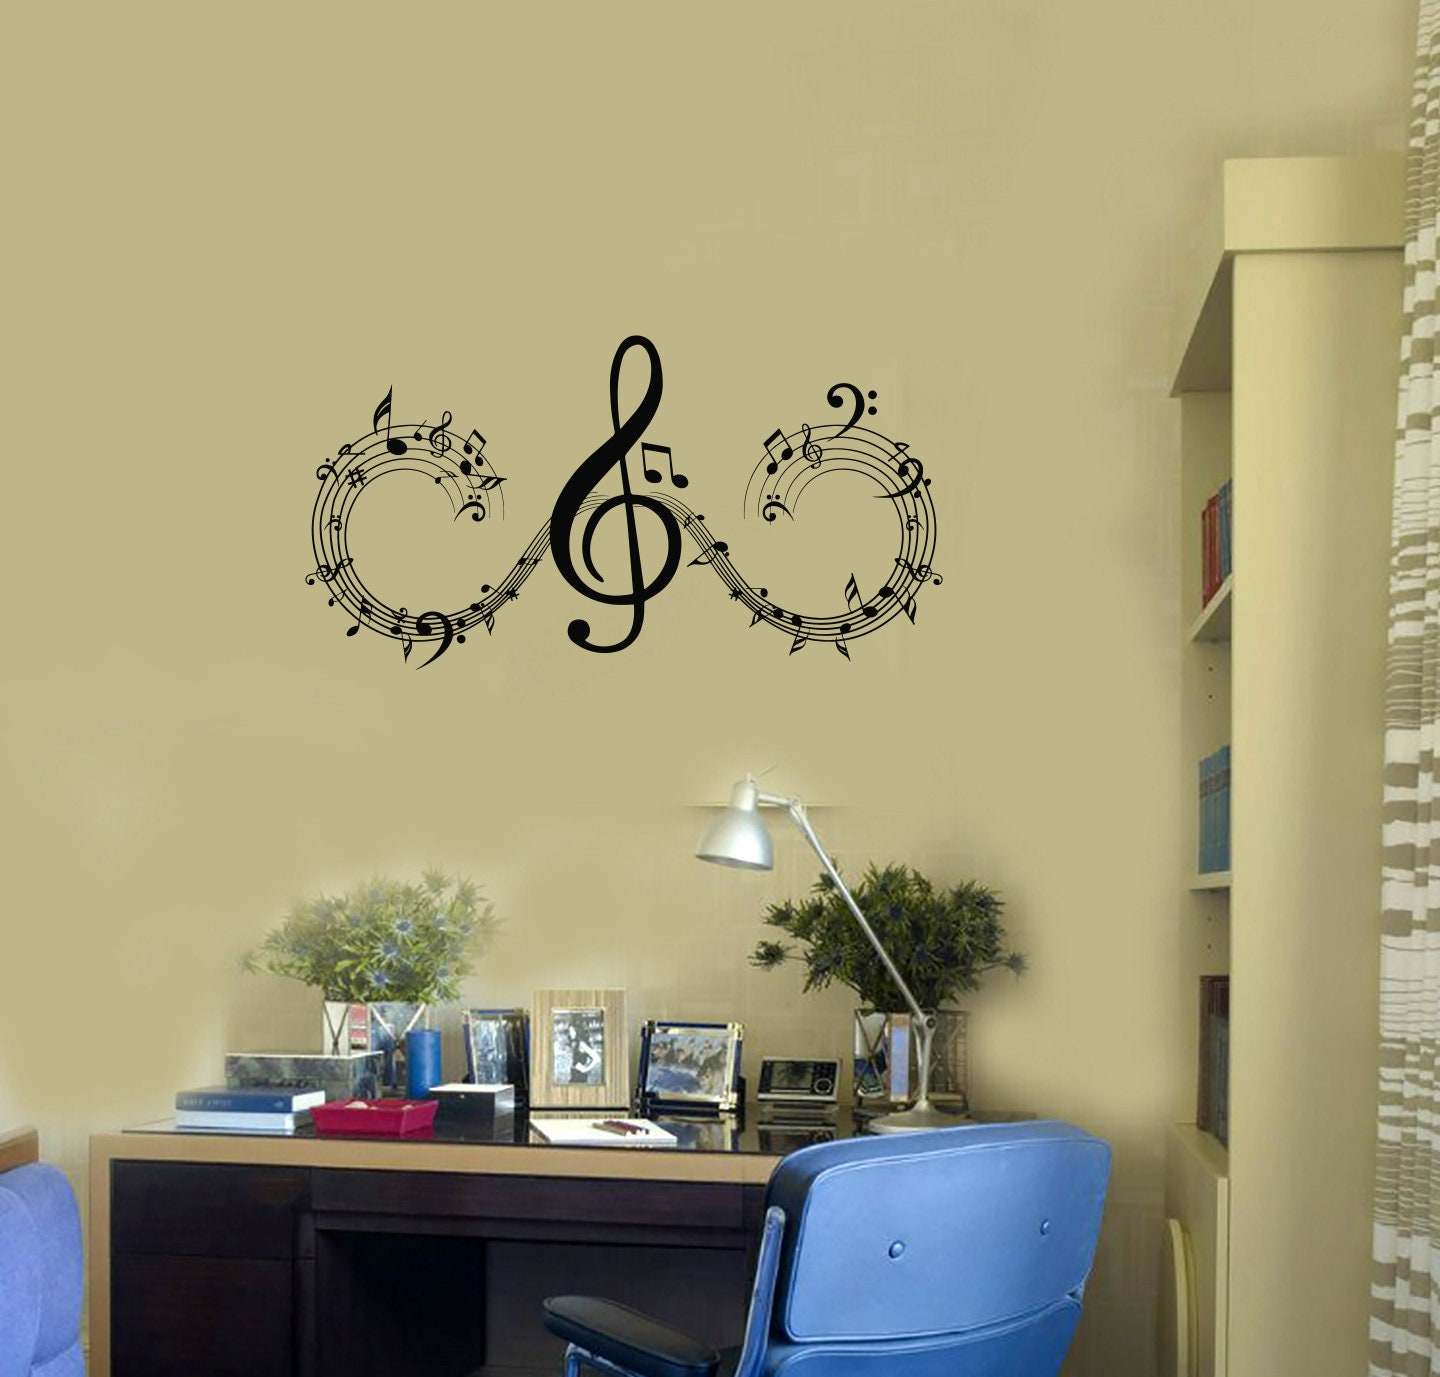 Musical Notes Vinyl Wall Decal Music Home Interior Room Art | Etsy